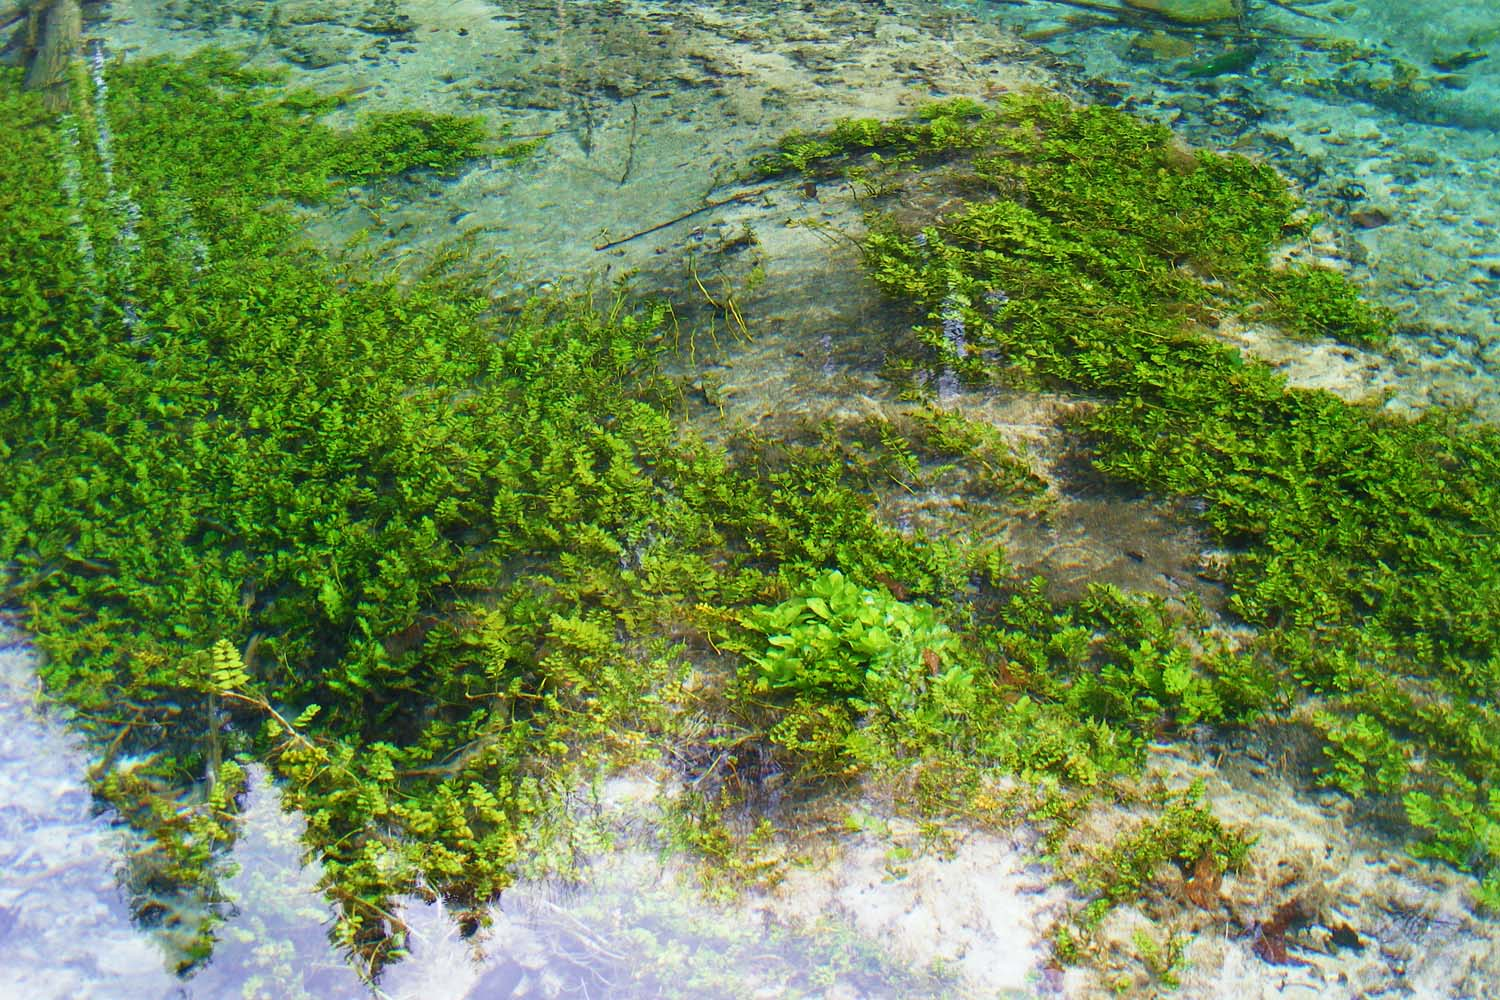 Clear water of Plitvice Lakes